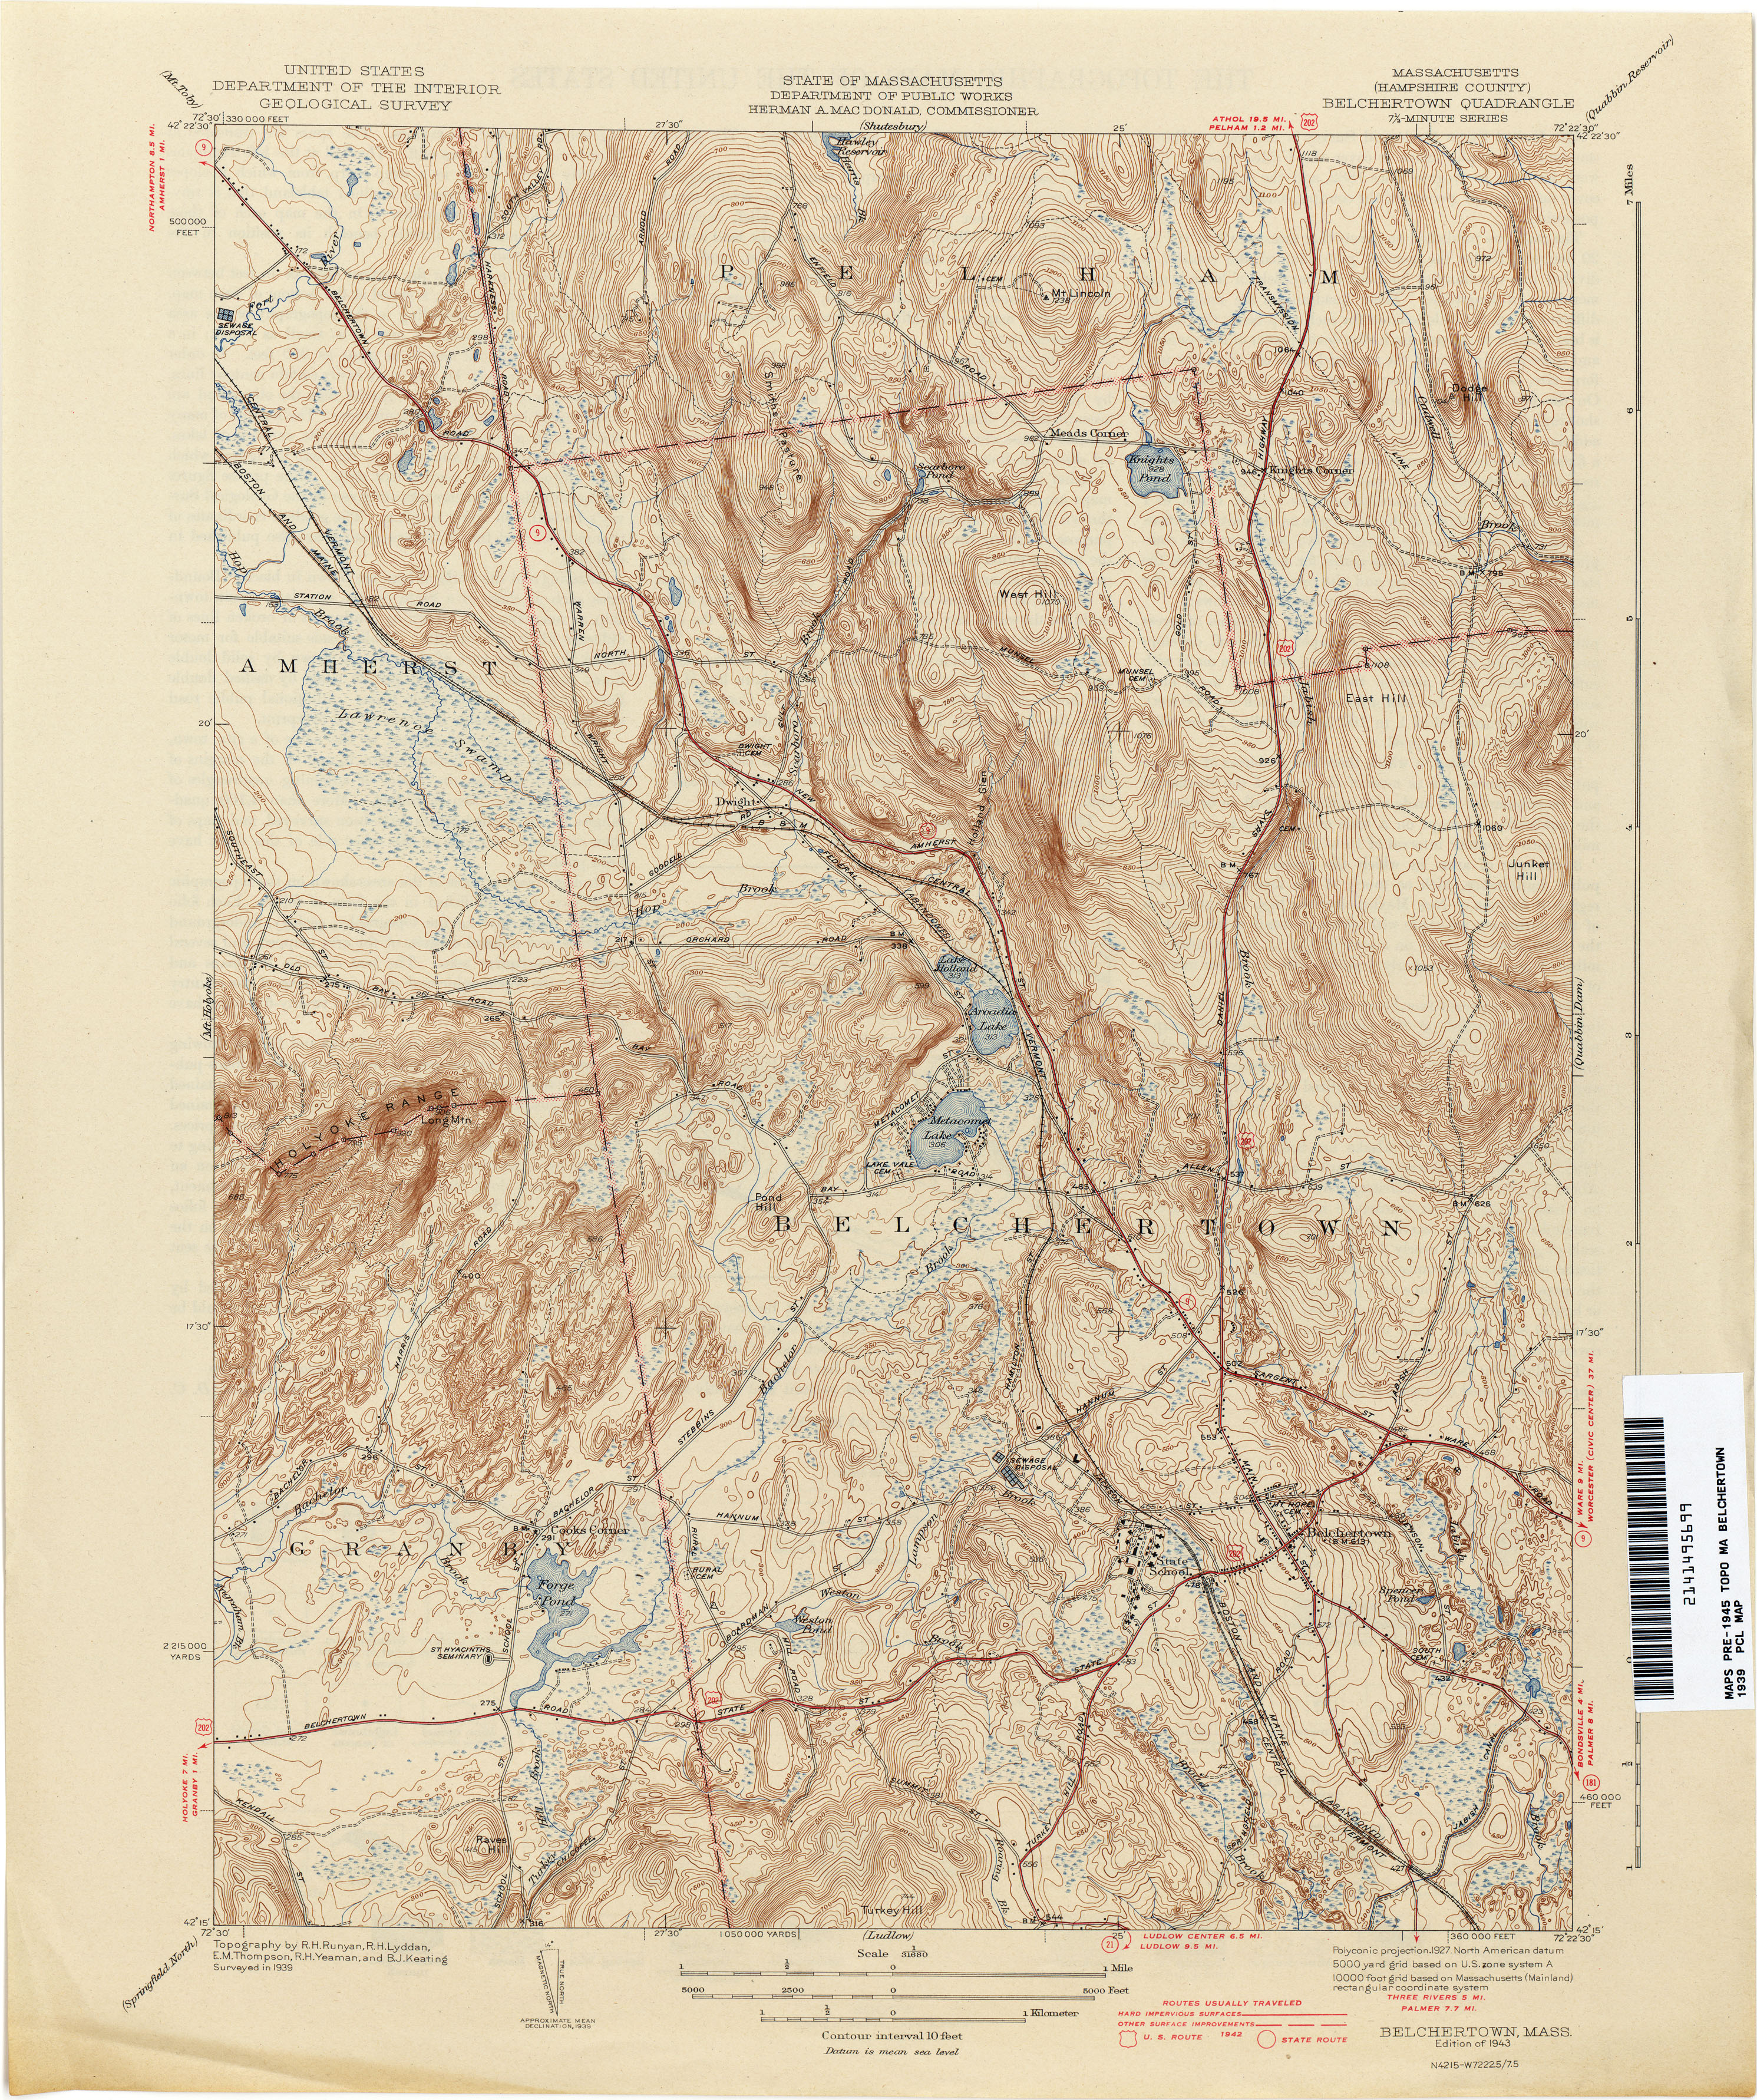 Machusetts Historical Topographic Maps - Perry-Castañeda ... on map of metro boston ma, map of streets north adams, map of mass coastline, map of so shore ma, map of ri and ma,